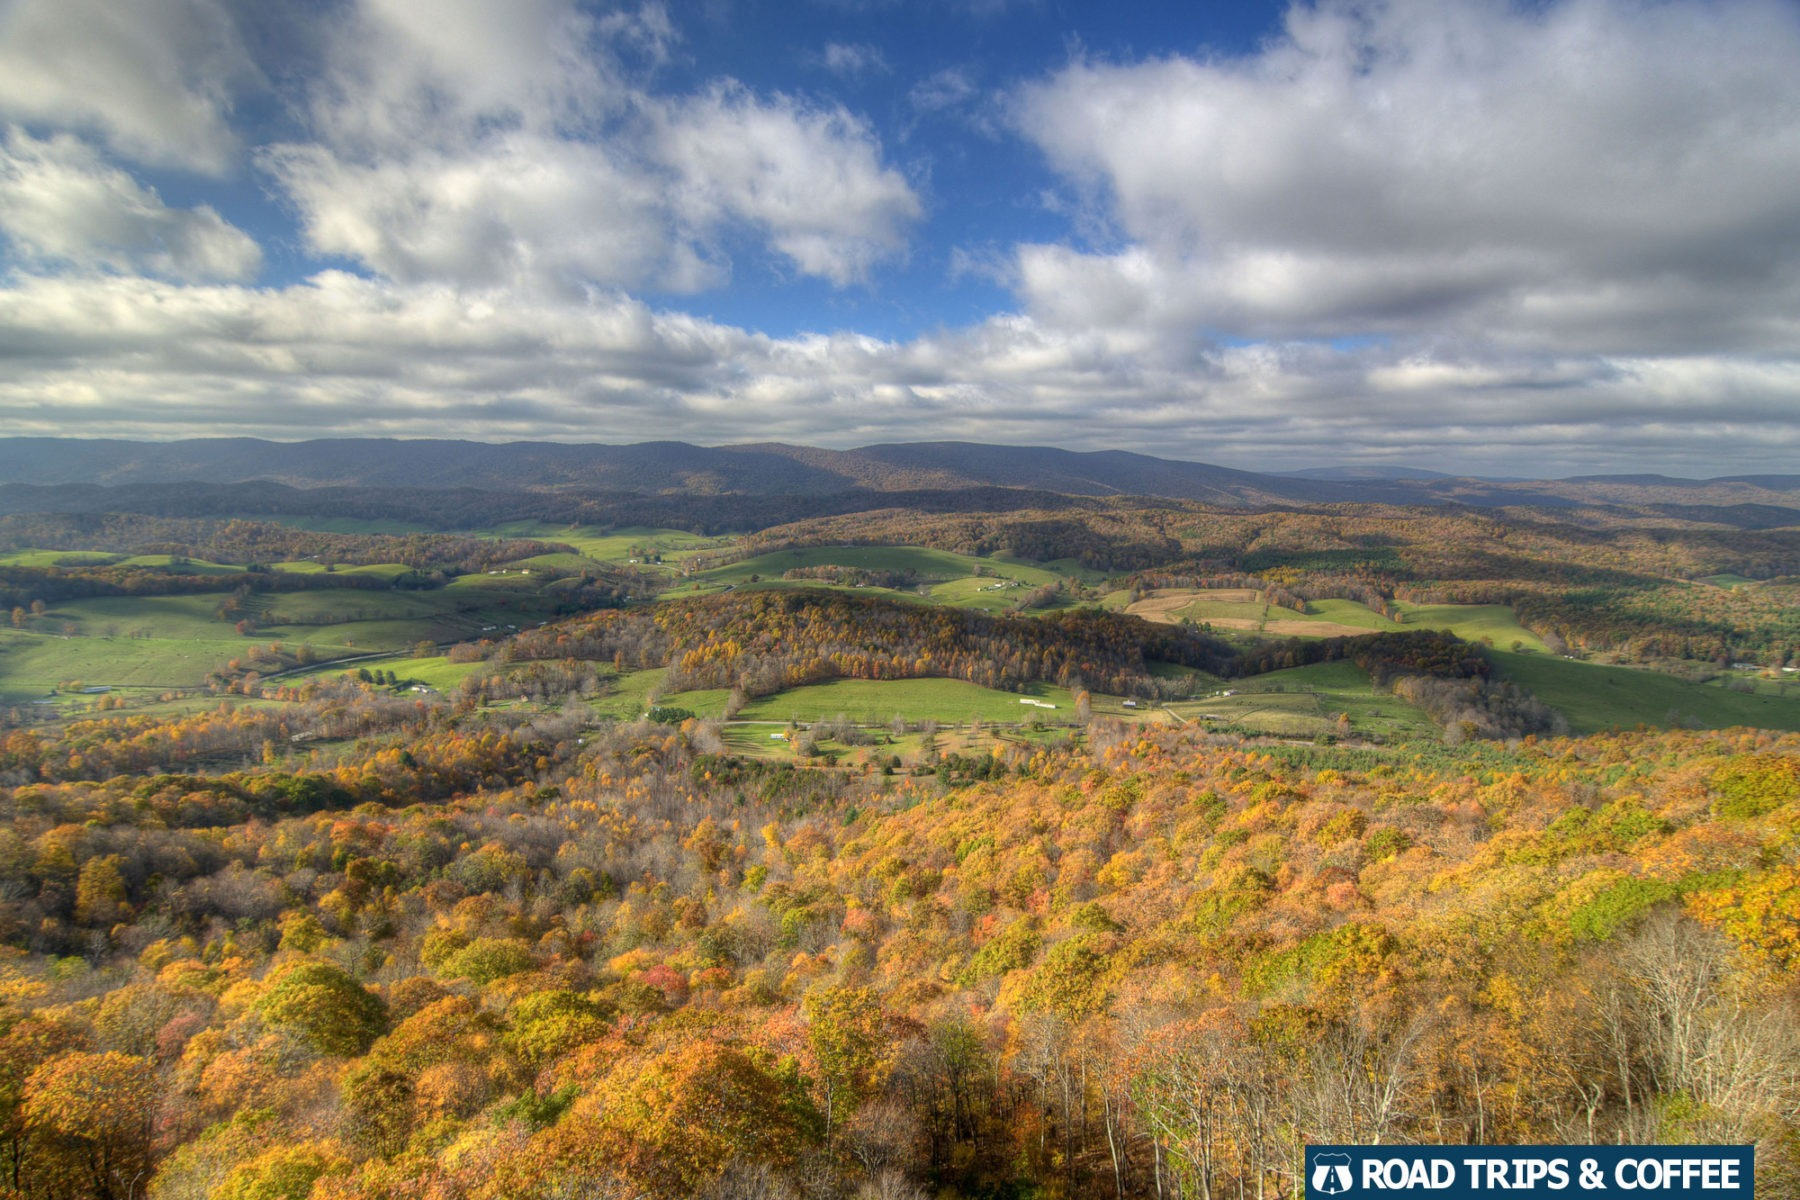 Autumn colors across the landscape near the Big Walker Lookout in Wytheville, Virginia